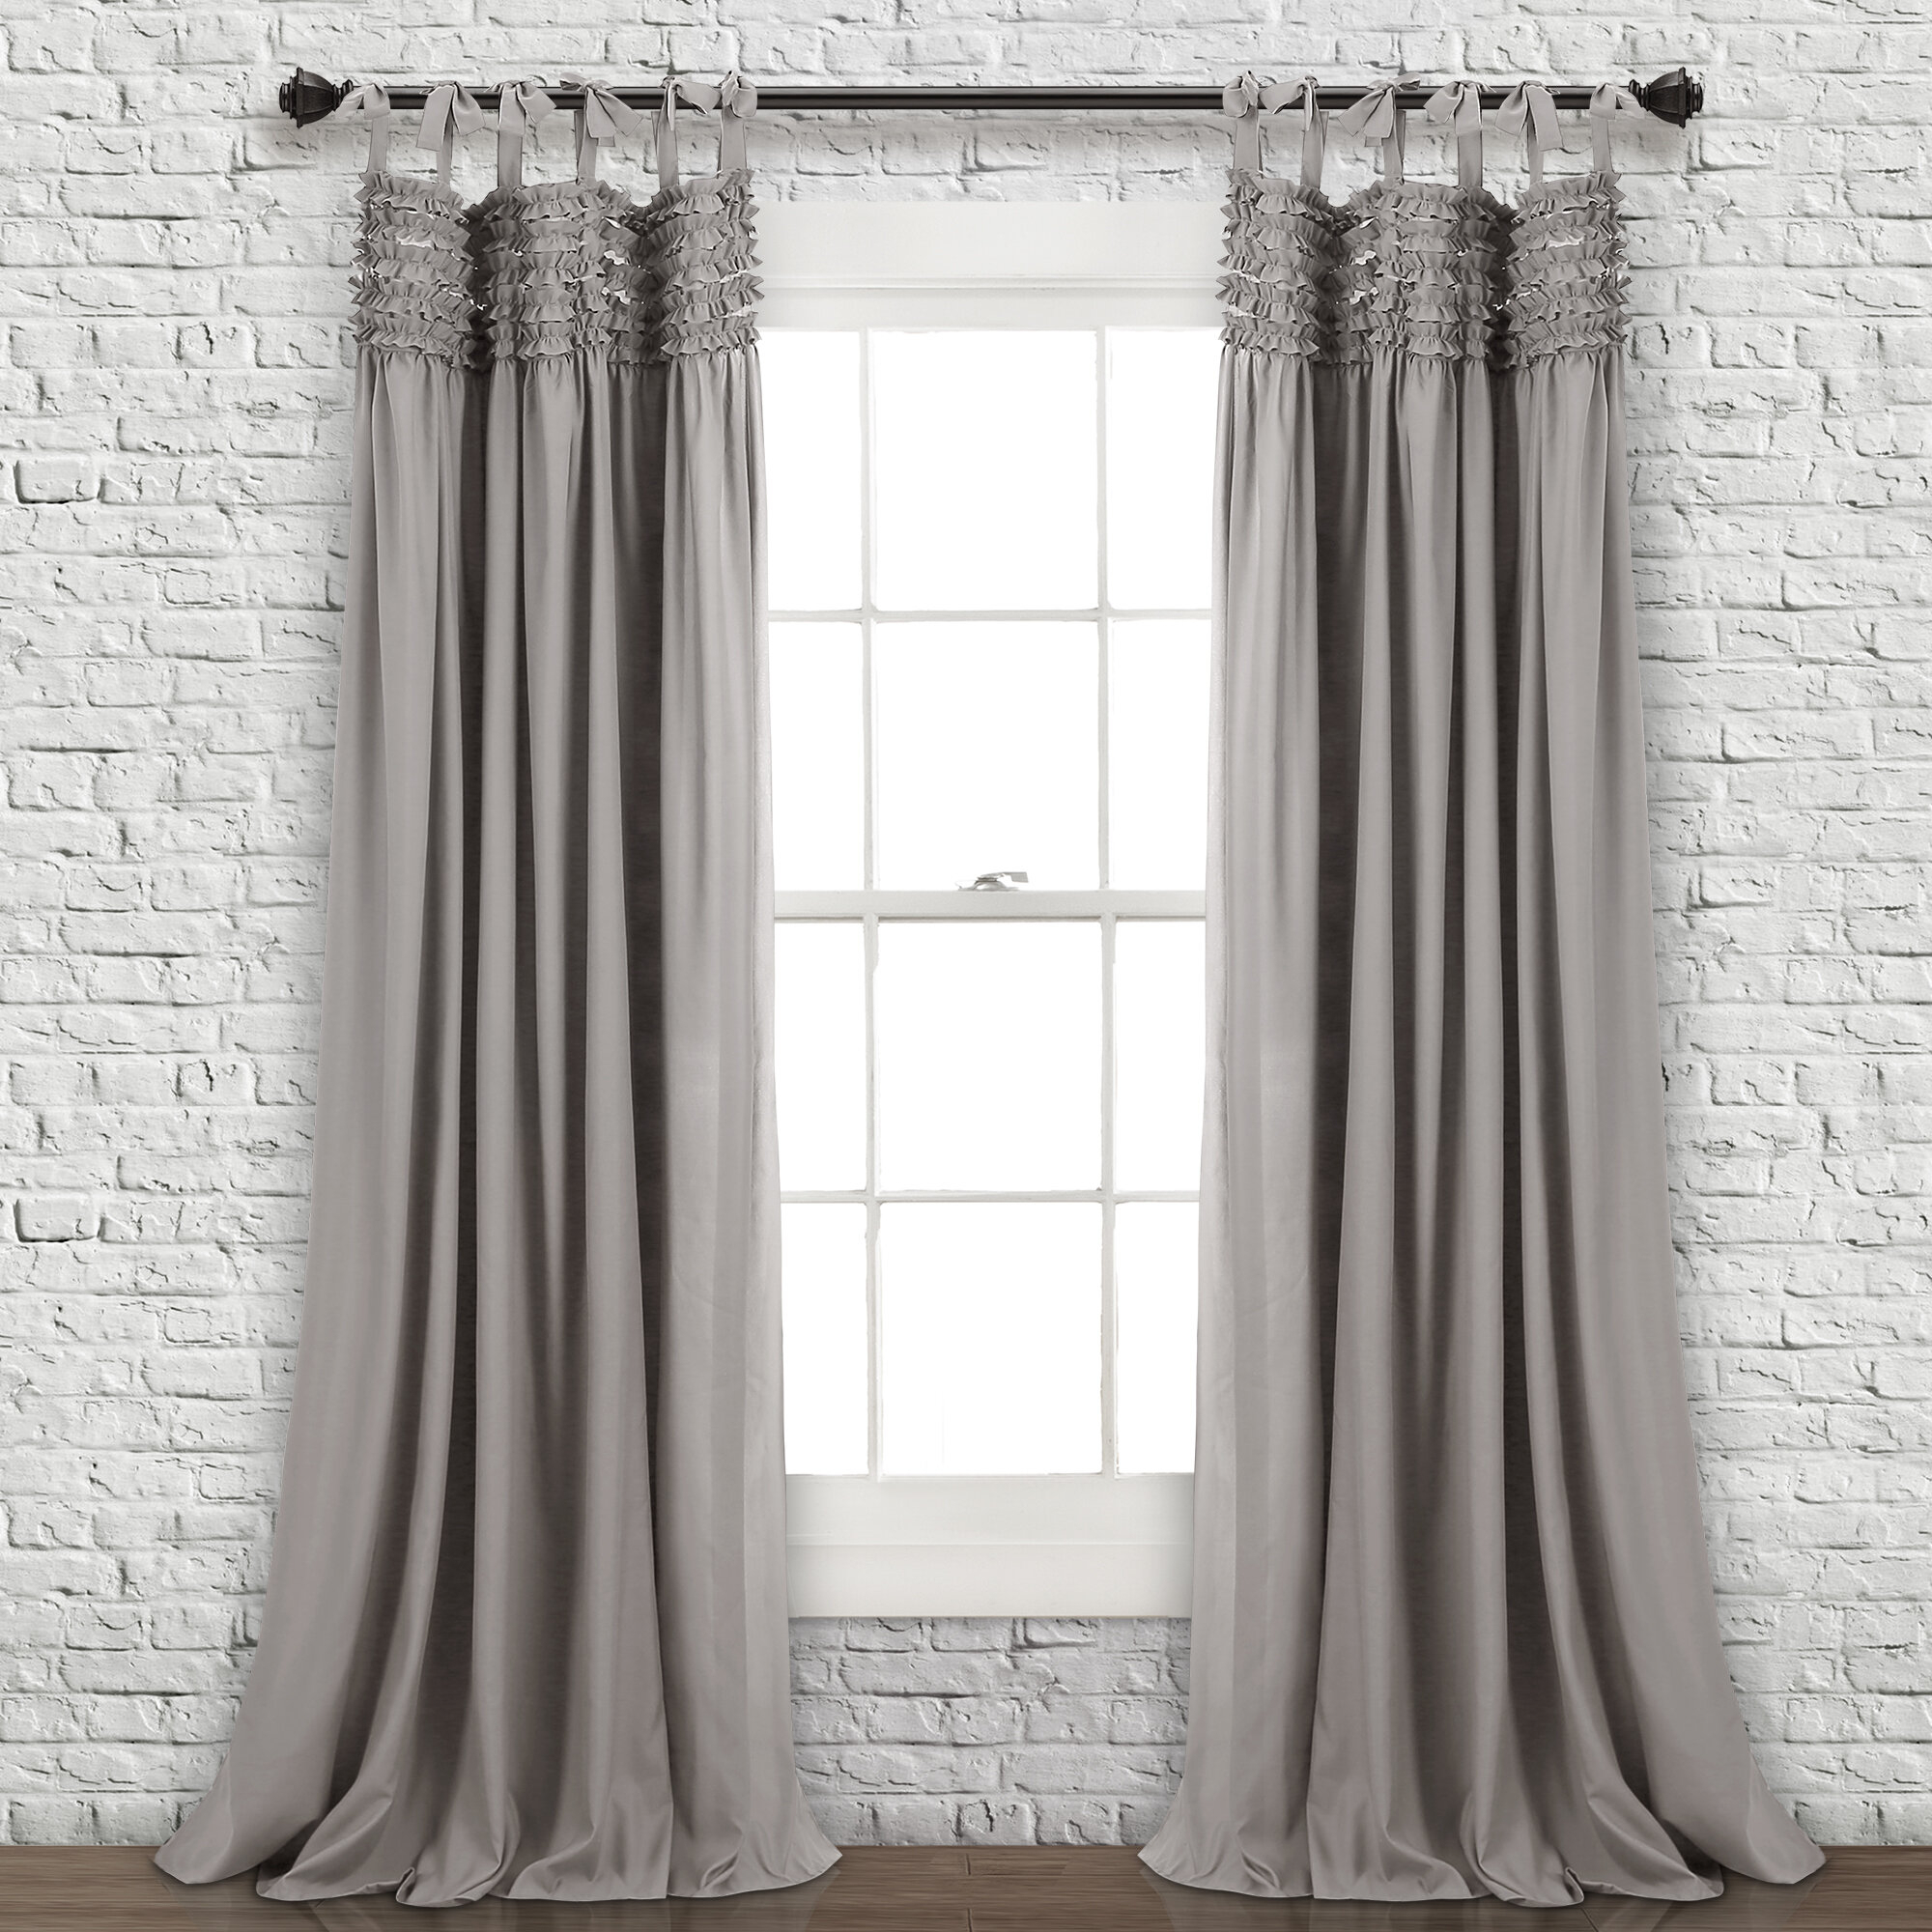 Aloysia Ruffle Pair Solid Tab Top Curtains Within Ruffle Diamond Curtain Panel Pairs (View 11 of 20)